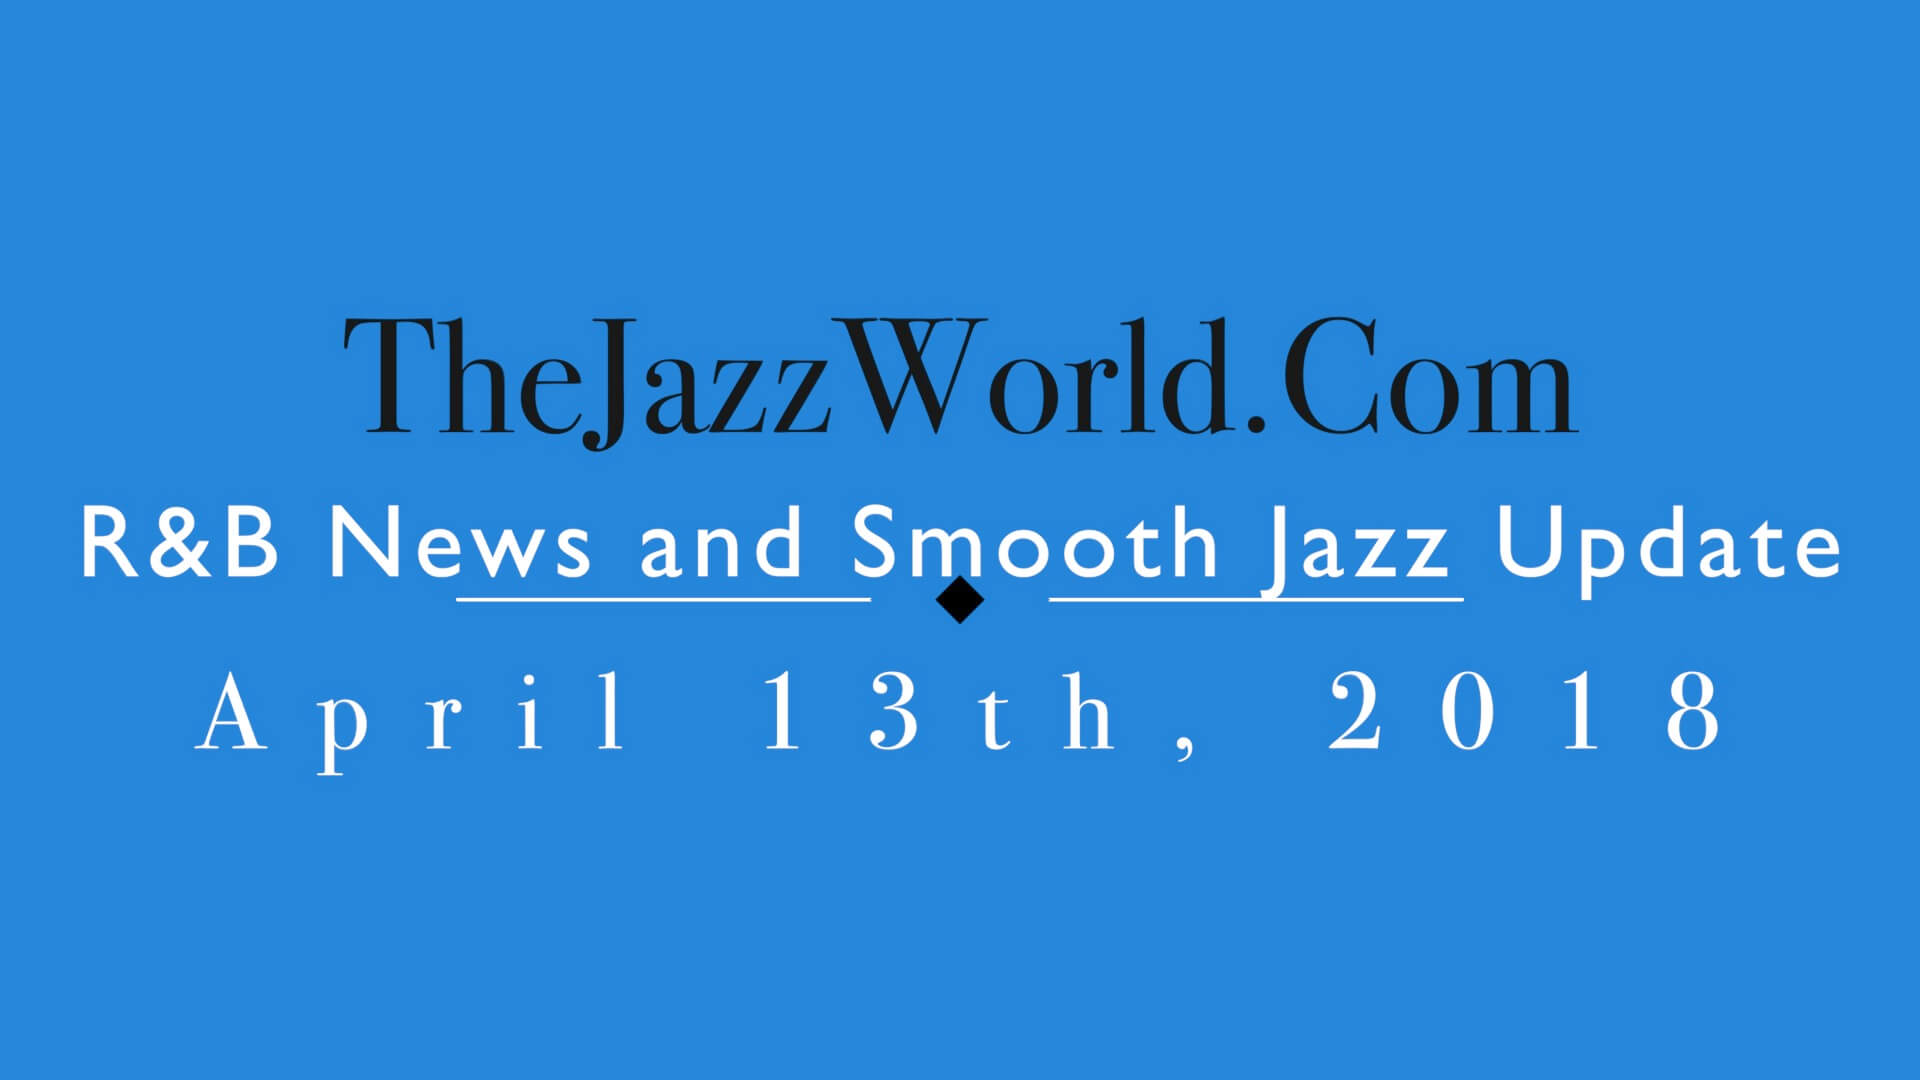 Latest R&B News and Smooth Jazz Update April 13th